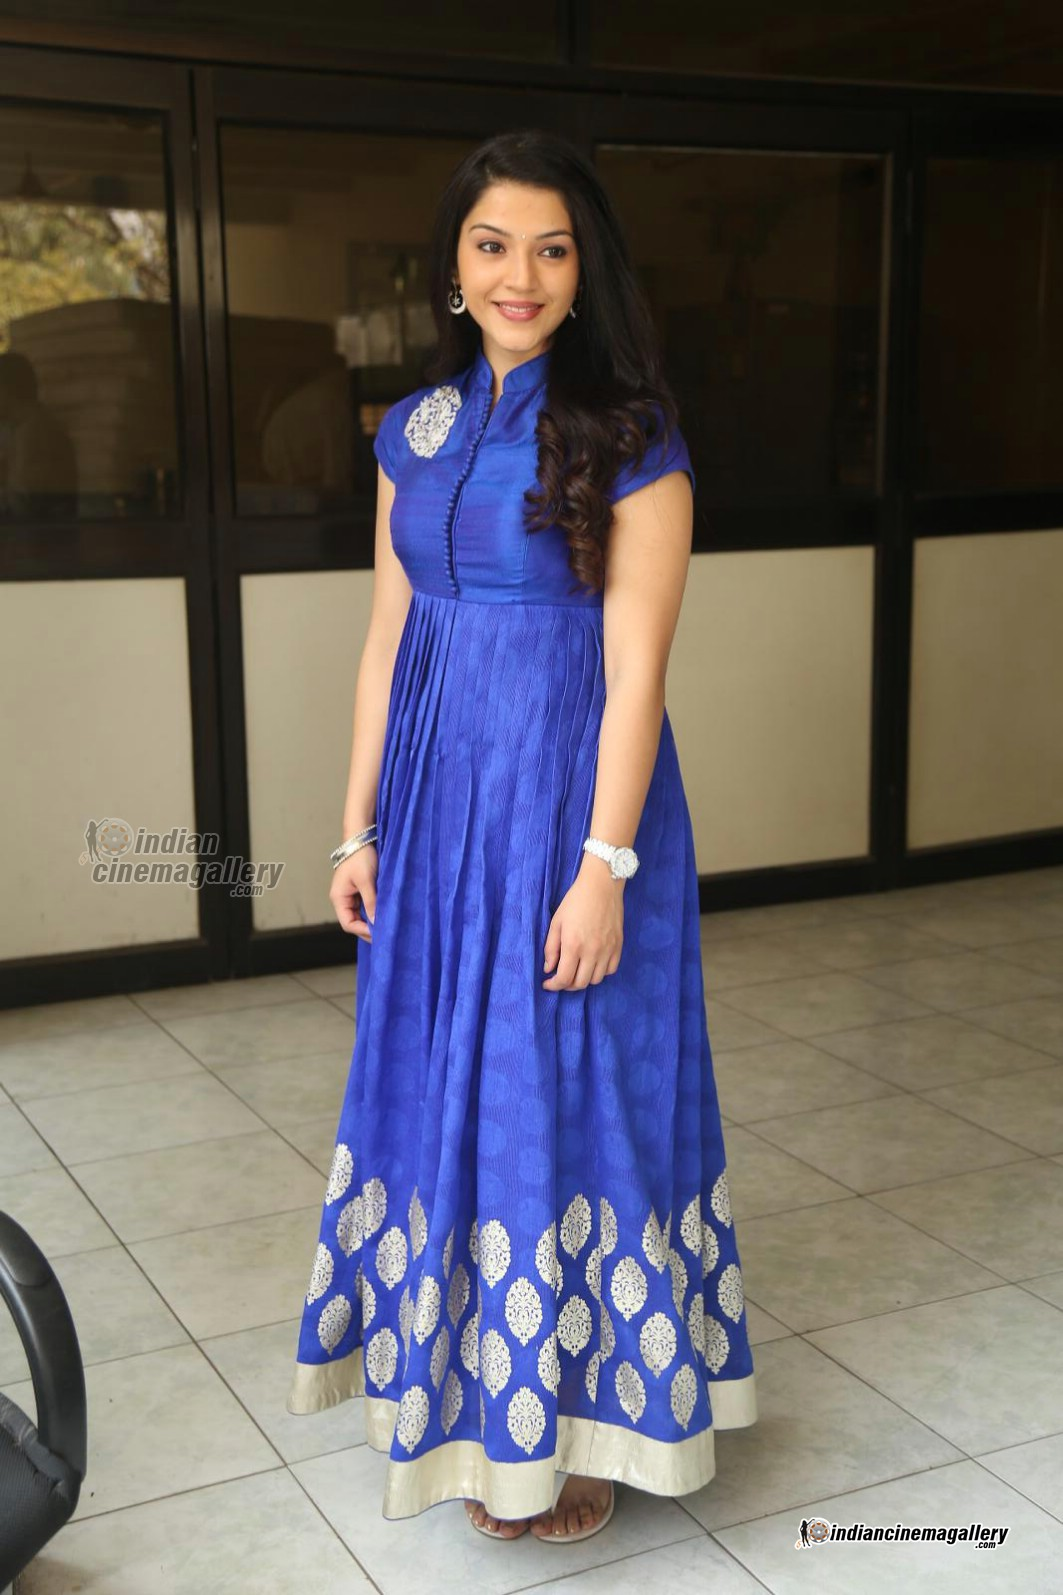 mehreen-in-blue-dress-february-2016-stills-93276